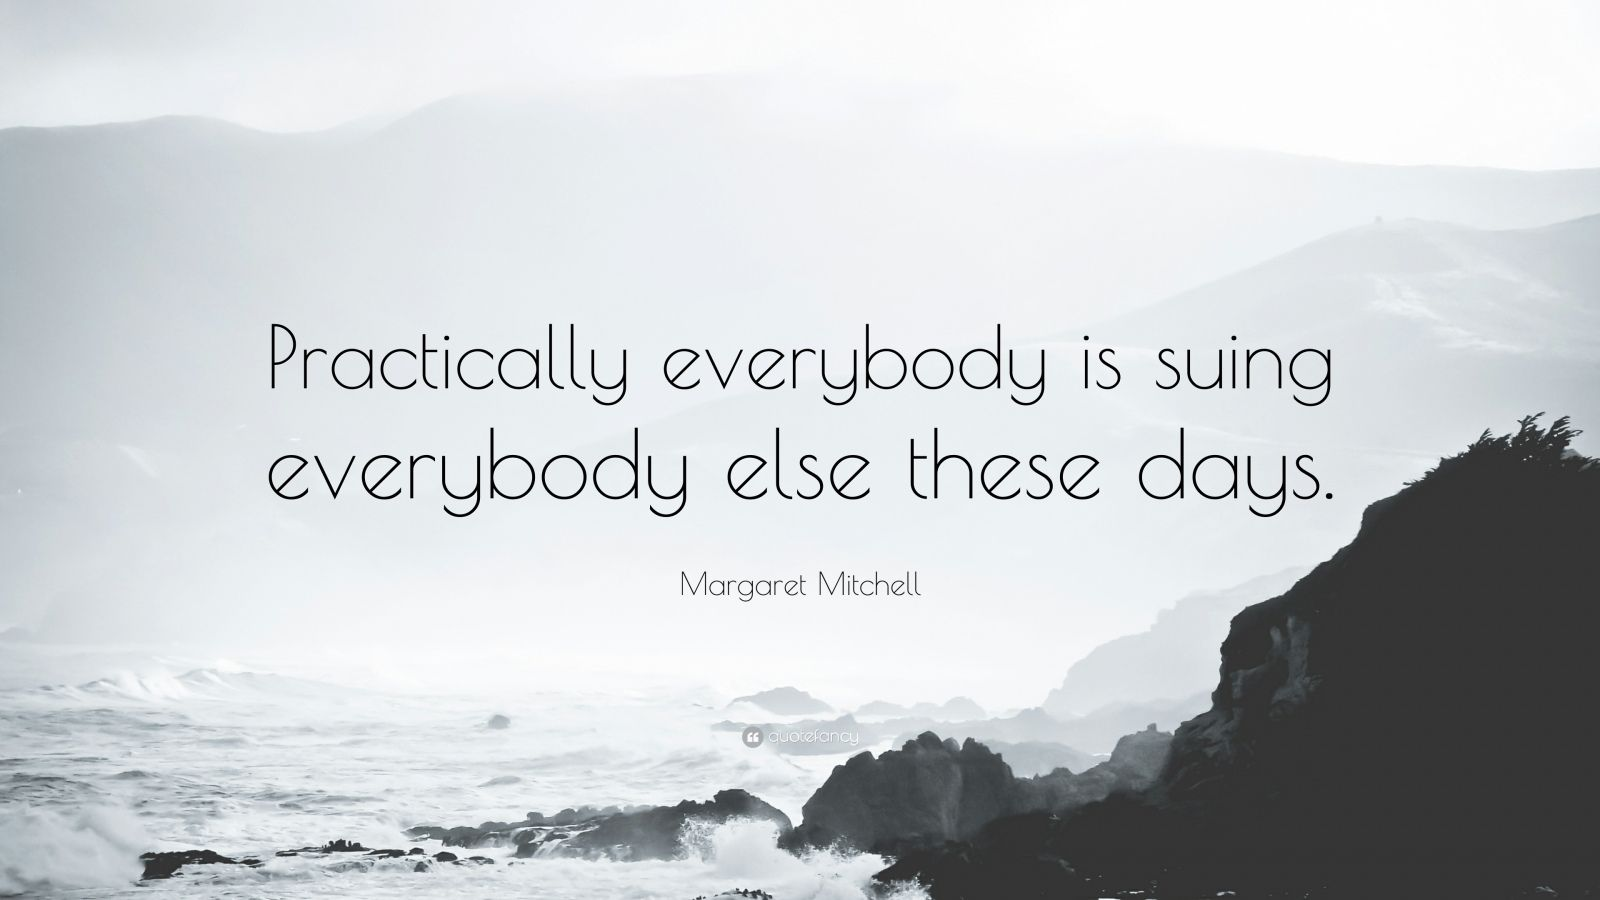 """Margaret Mitchell Quote: """"Practically everybody is suing everybody else these days."""""""